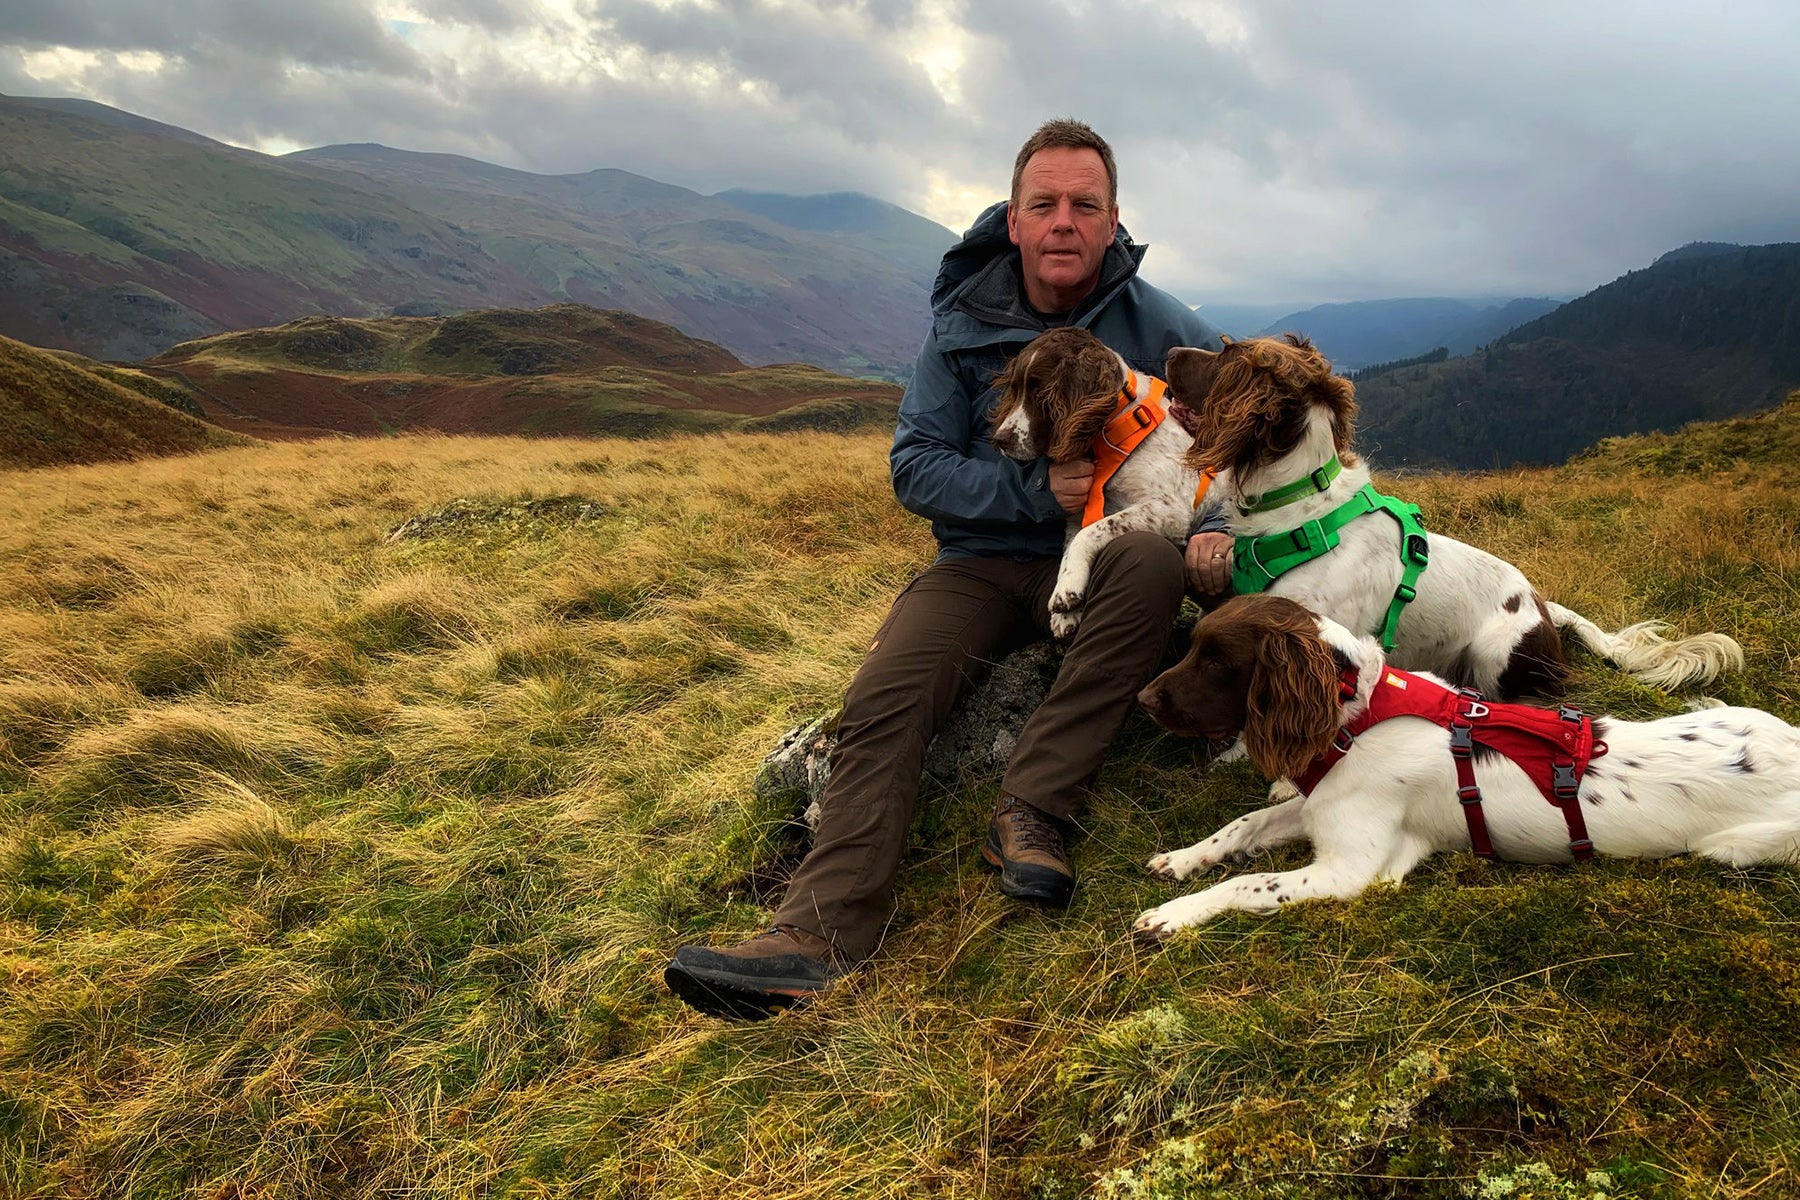 Ambassador Kerry with his three dogs in ruffwear harnesses outdoors.